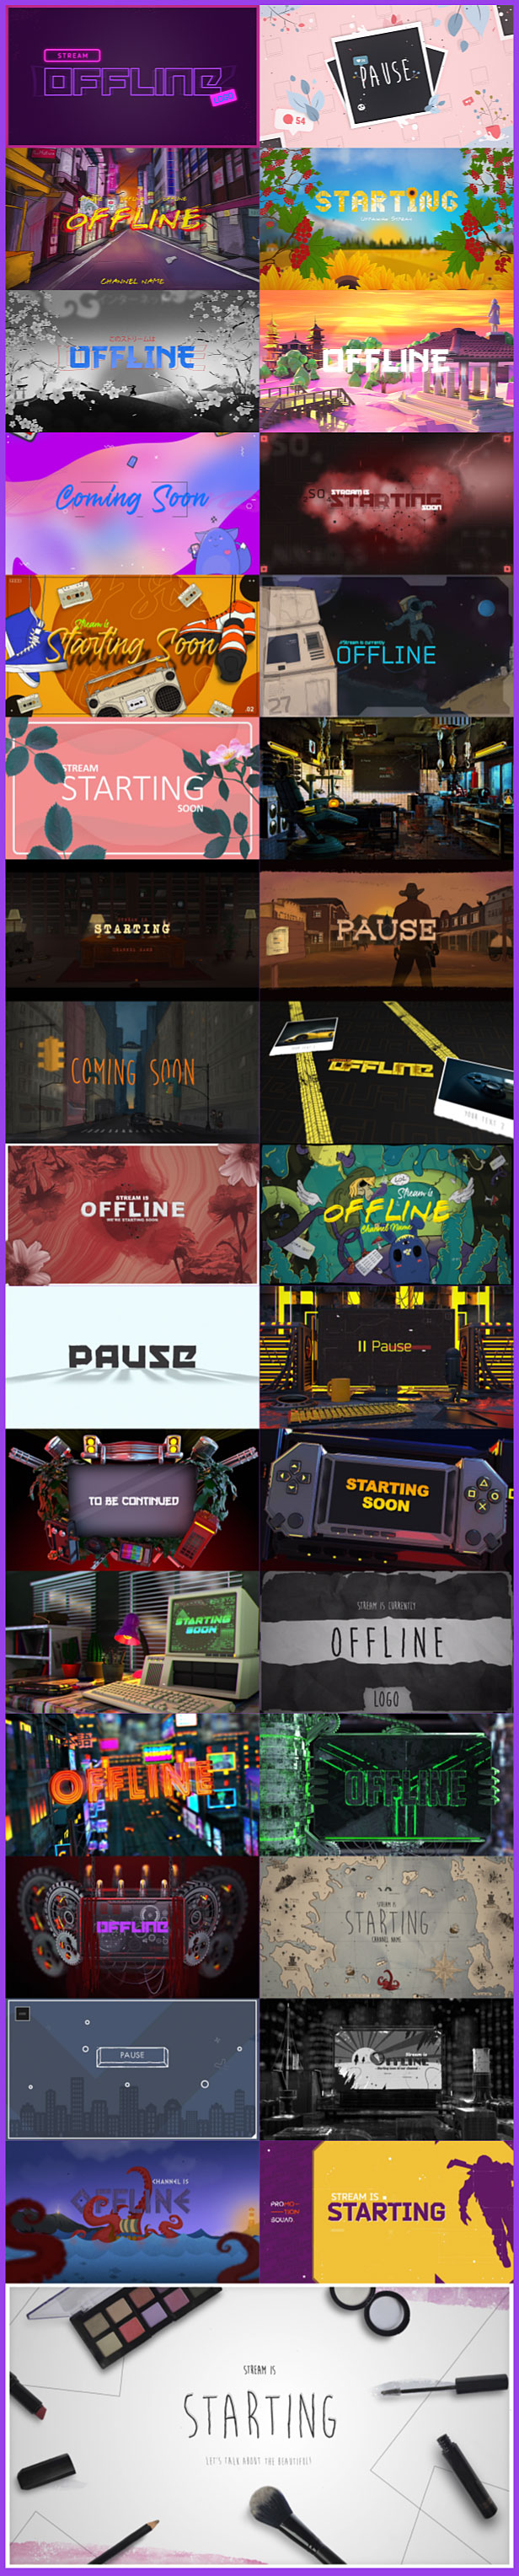 The Streamer | Everything for Web • Twitch • Youtube • Live - 7